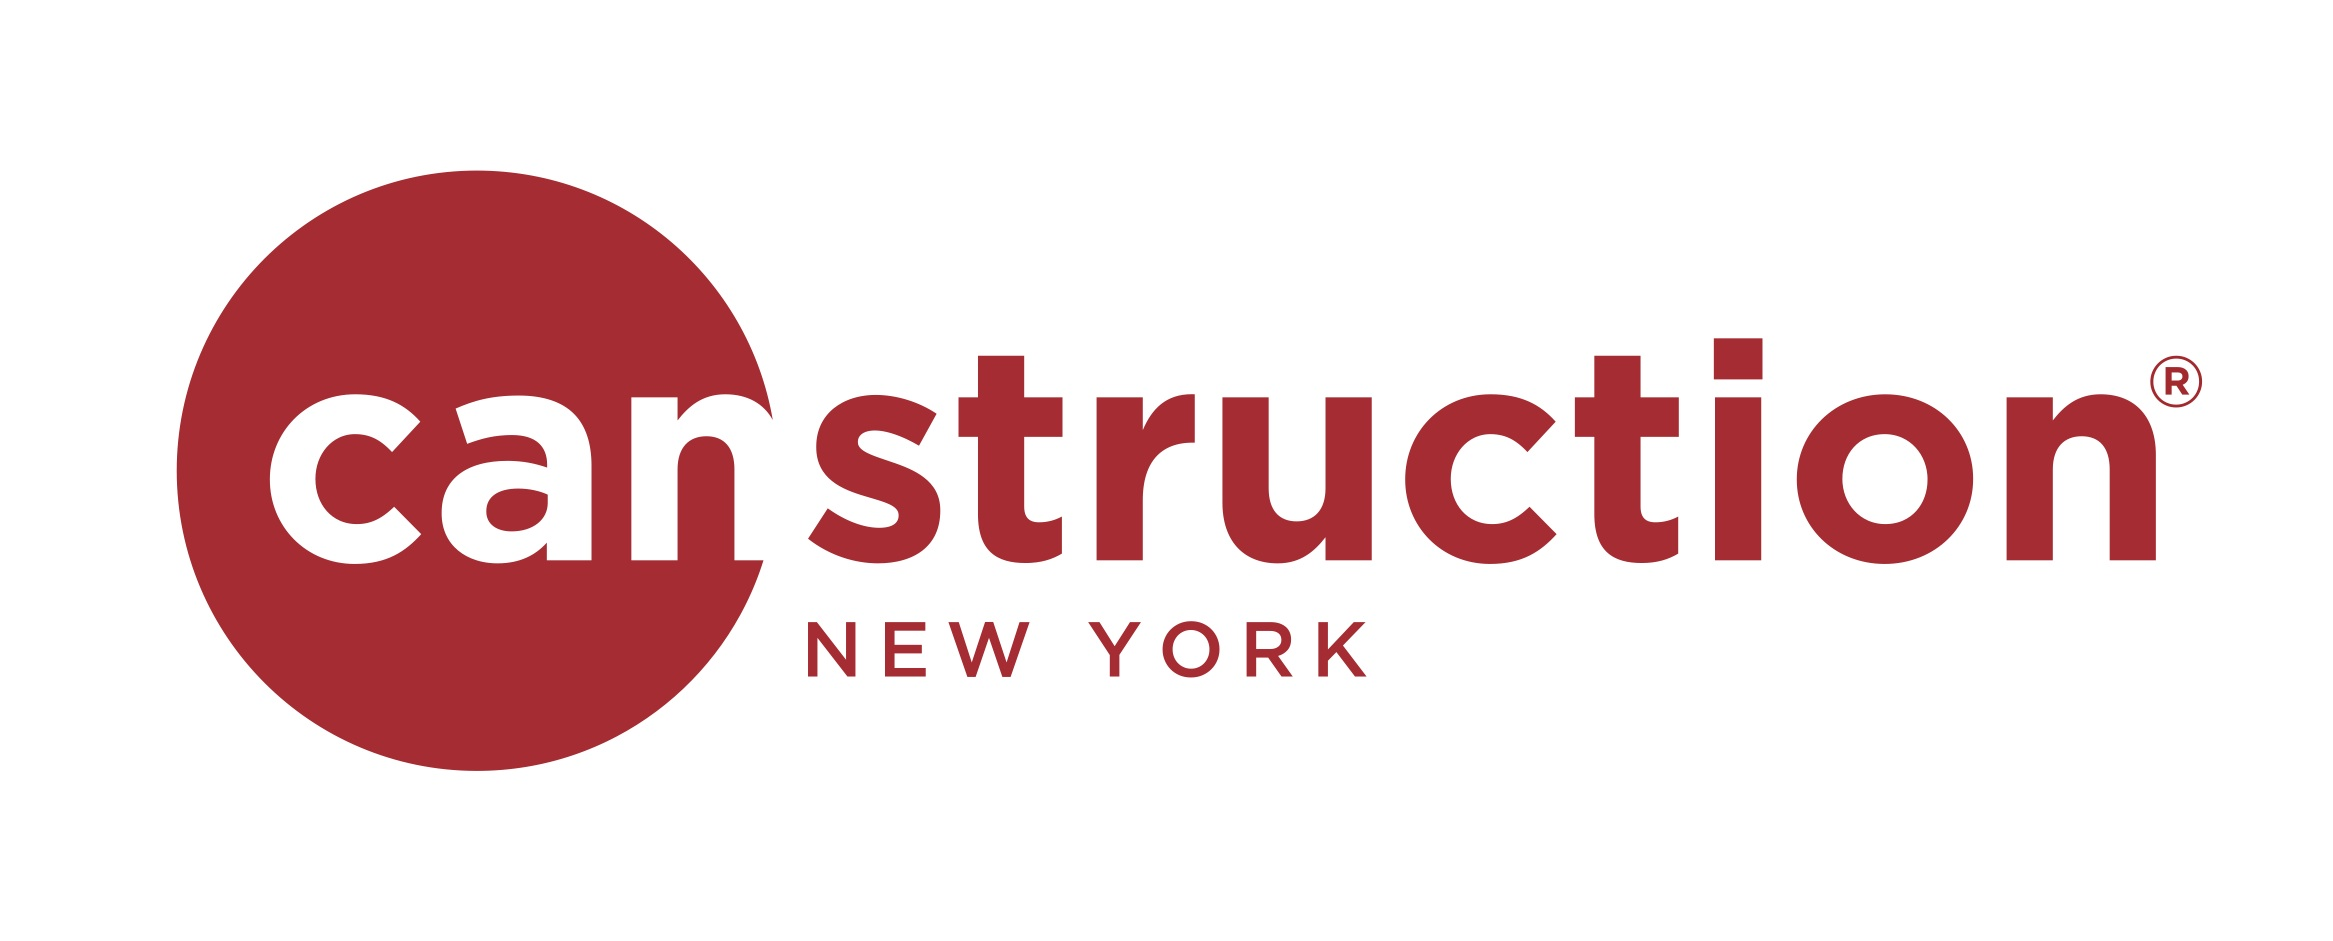 Canstruction New York logo